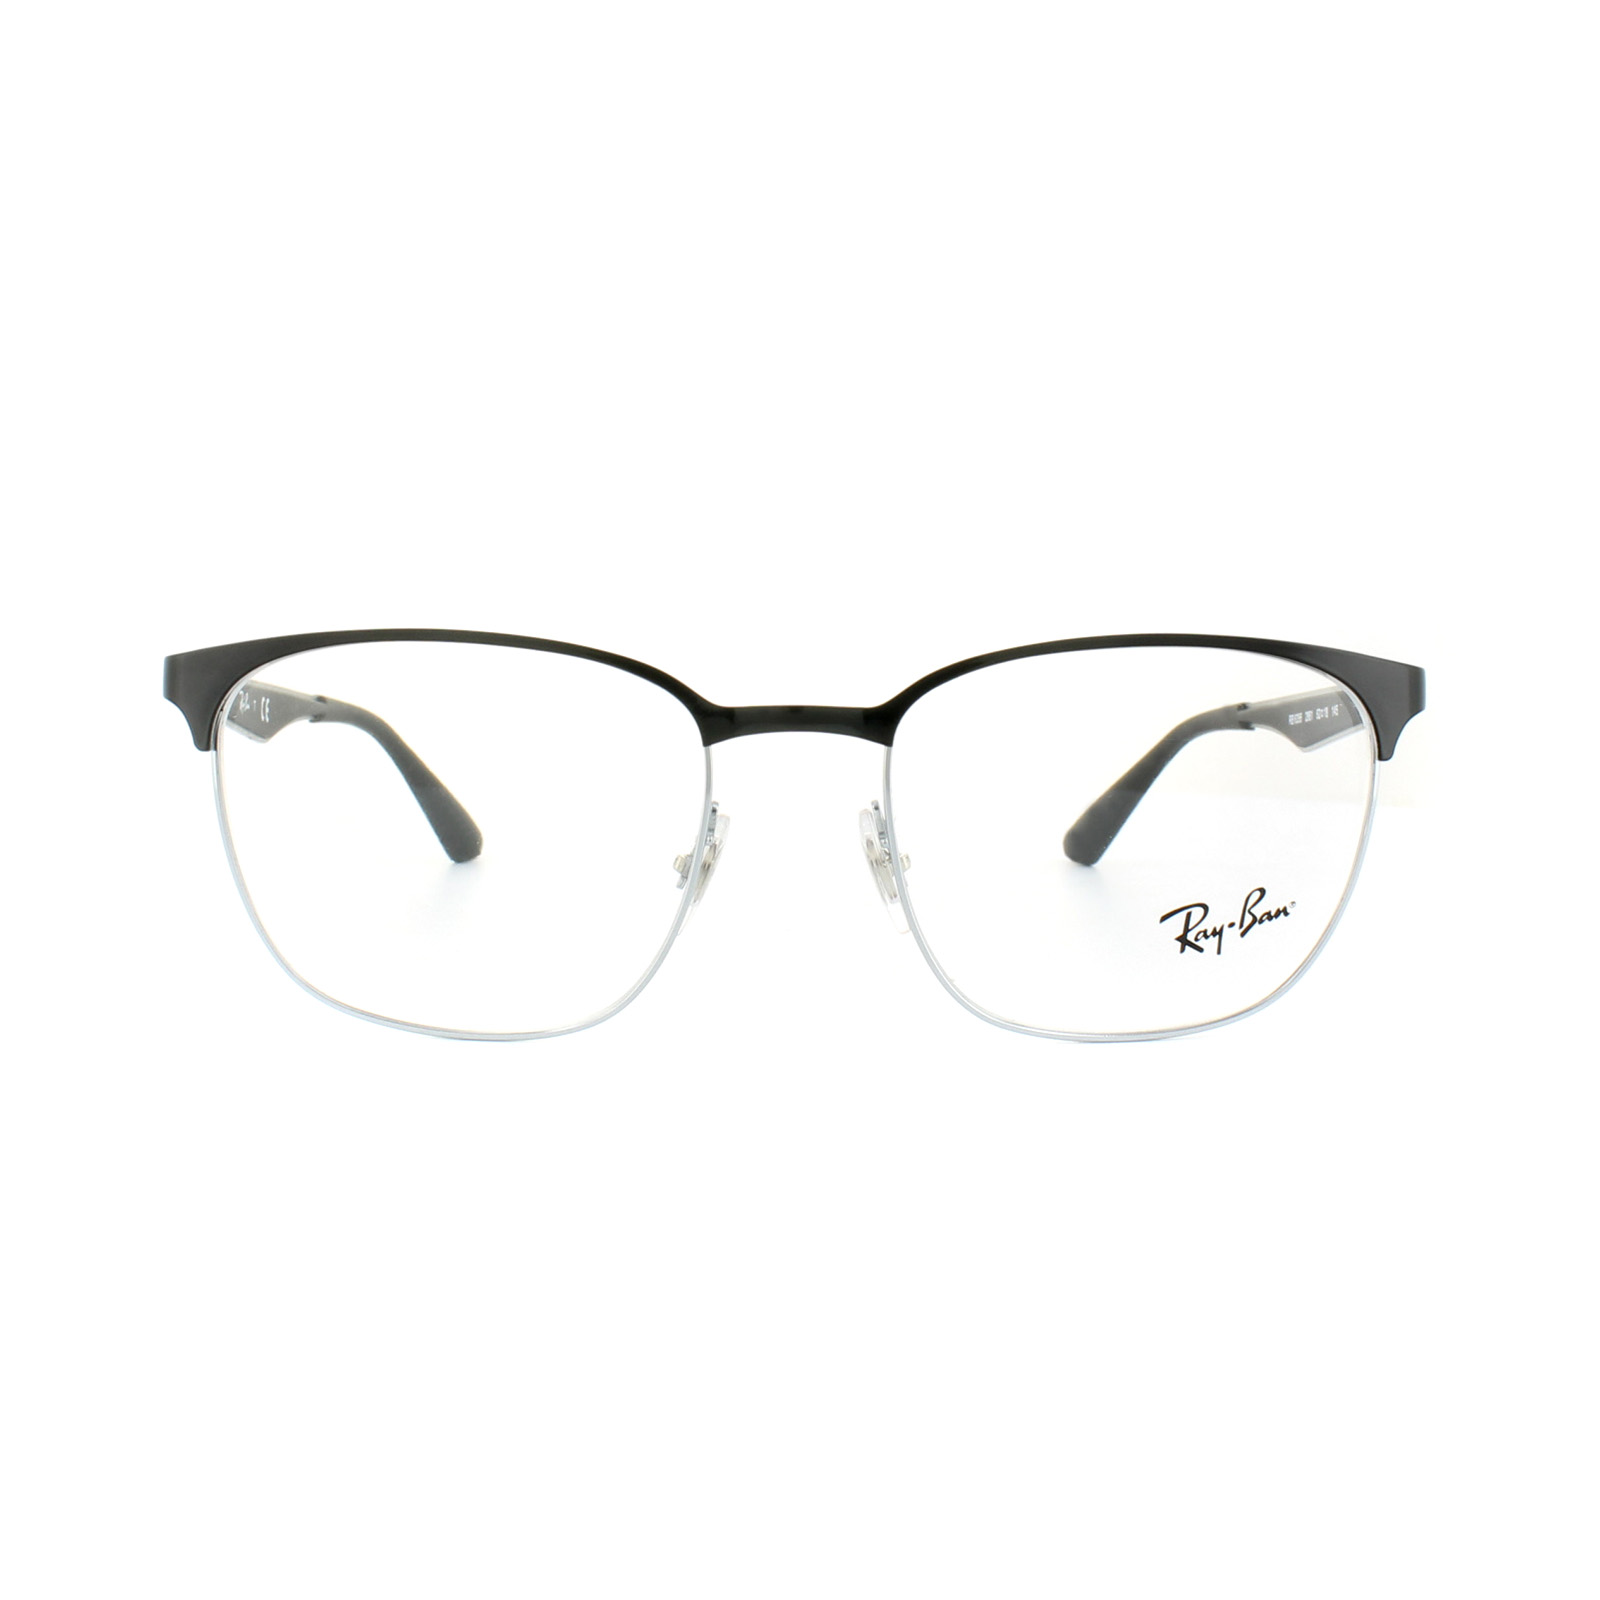 5fbed67e49 Ray Ban Rx Eyeglasses   Frames « One More Soul